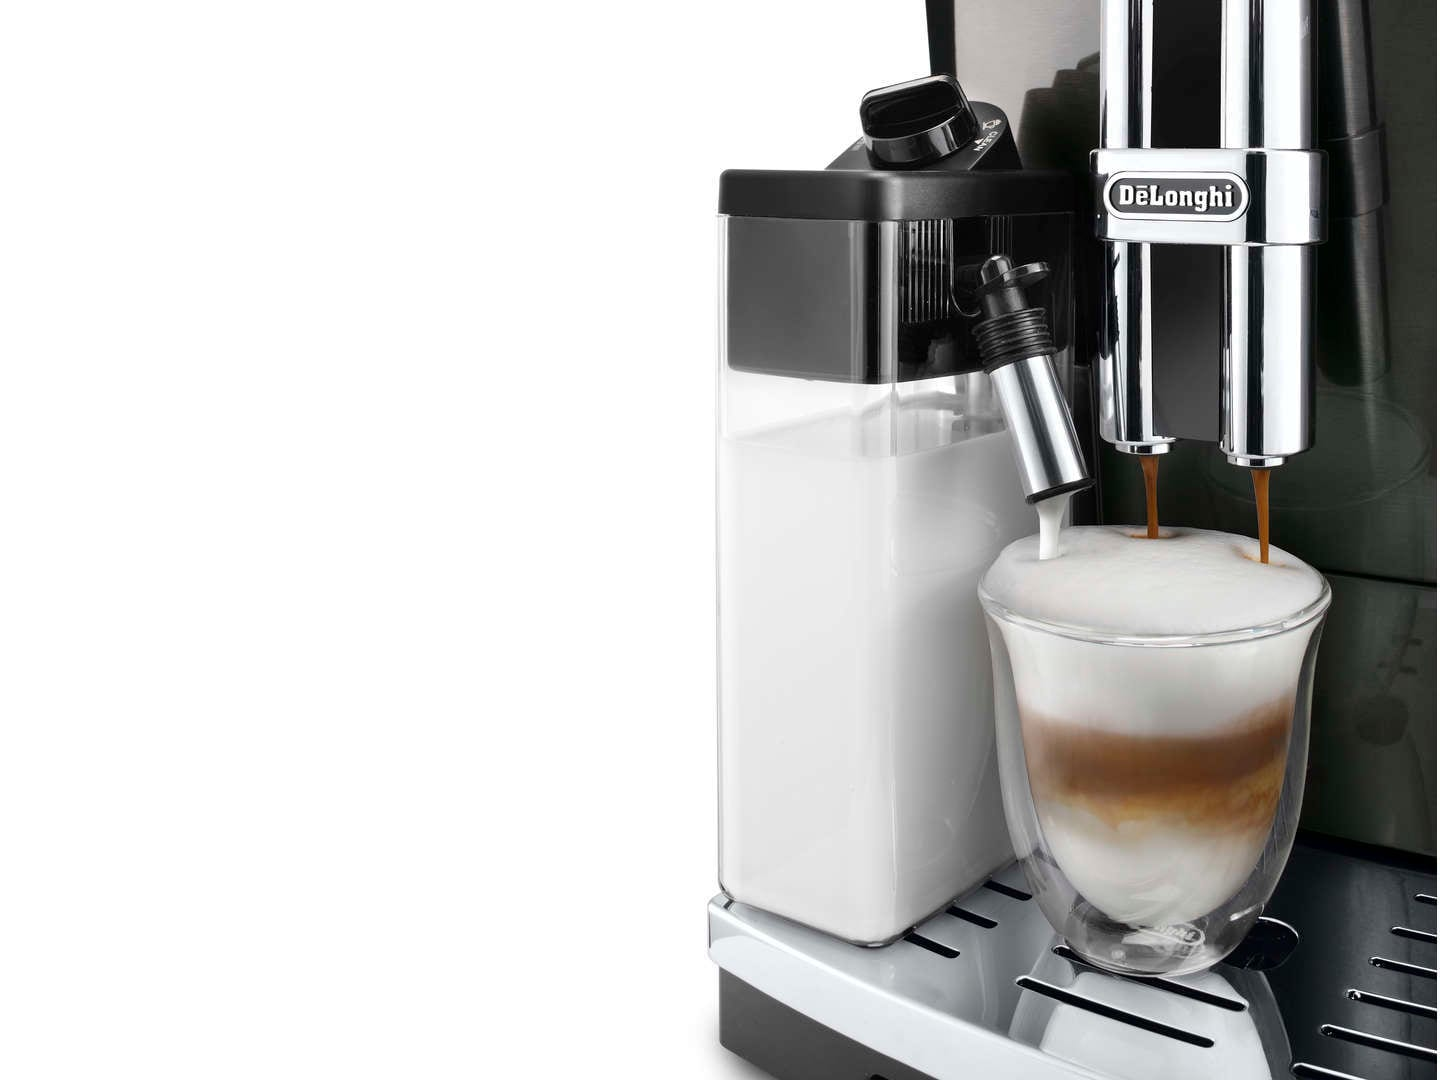 Design your espresso experience in one touch with the compact, full metal, bean-to-cup De'Longhi PrimaDonna S.  Add a touch of unmistakable Italian style with the PrimaDonnaS: premium stainless steel construction combined with a sleek compact foot print.